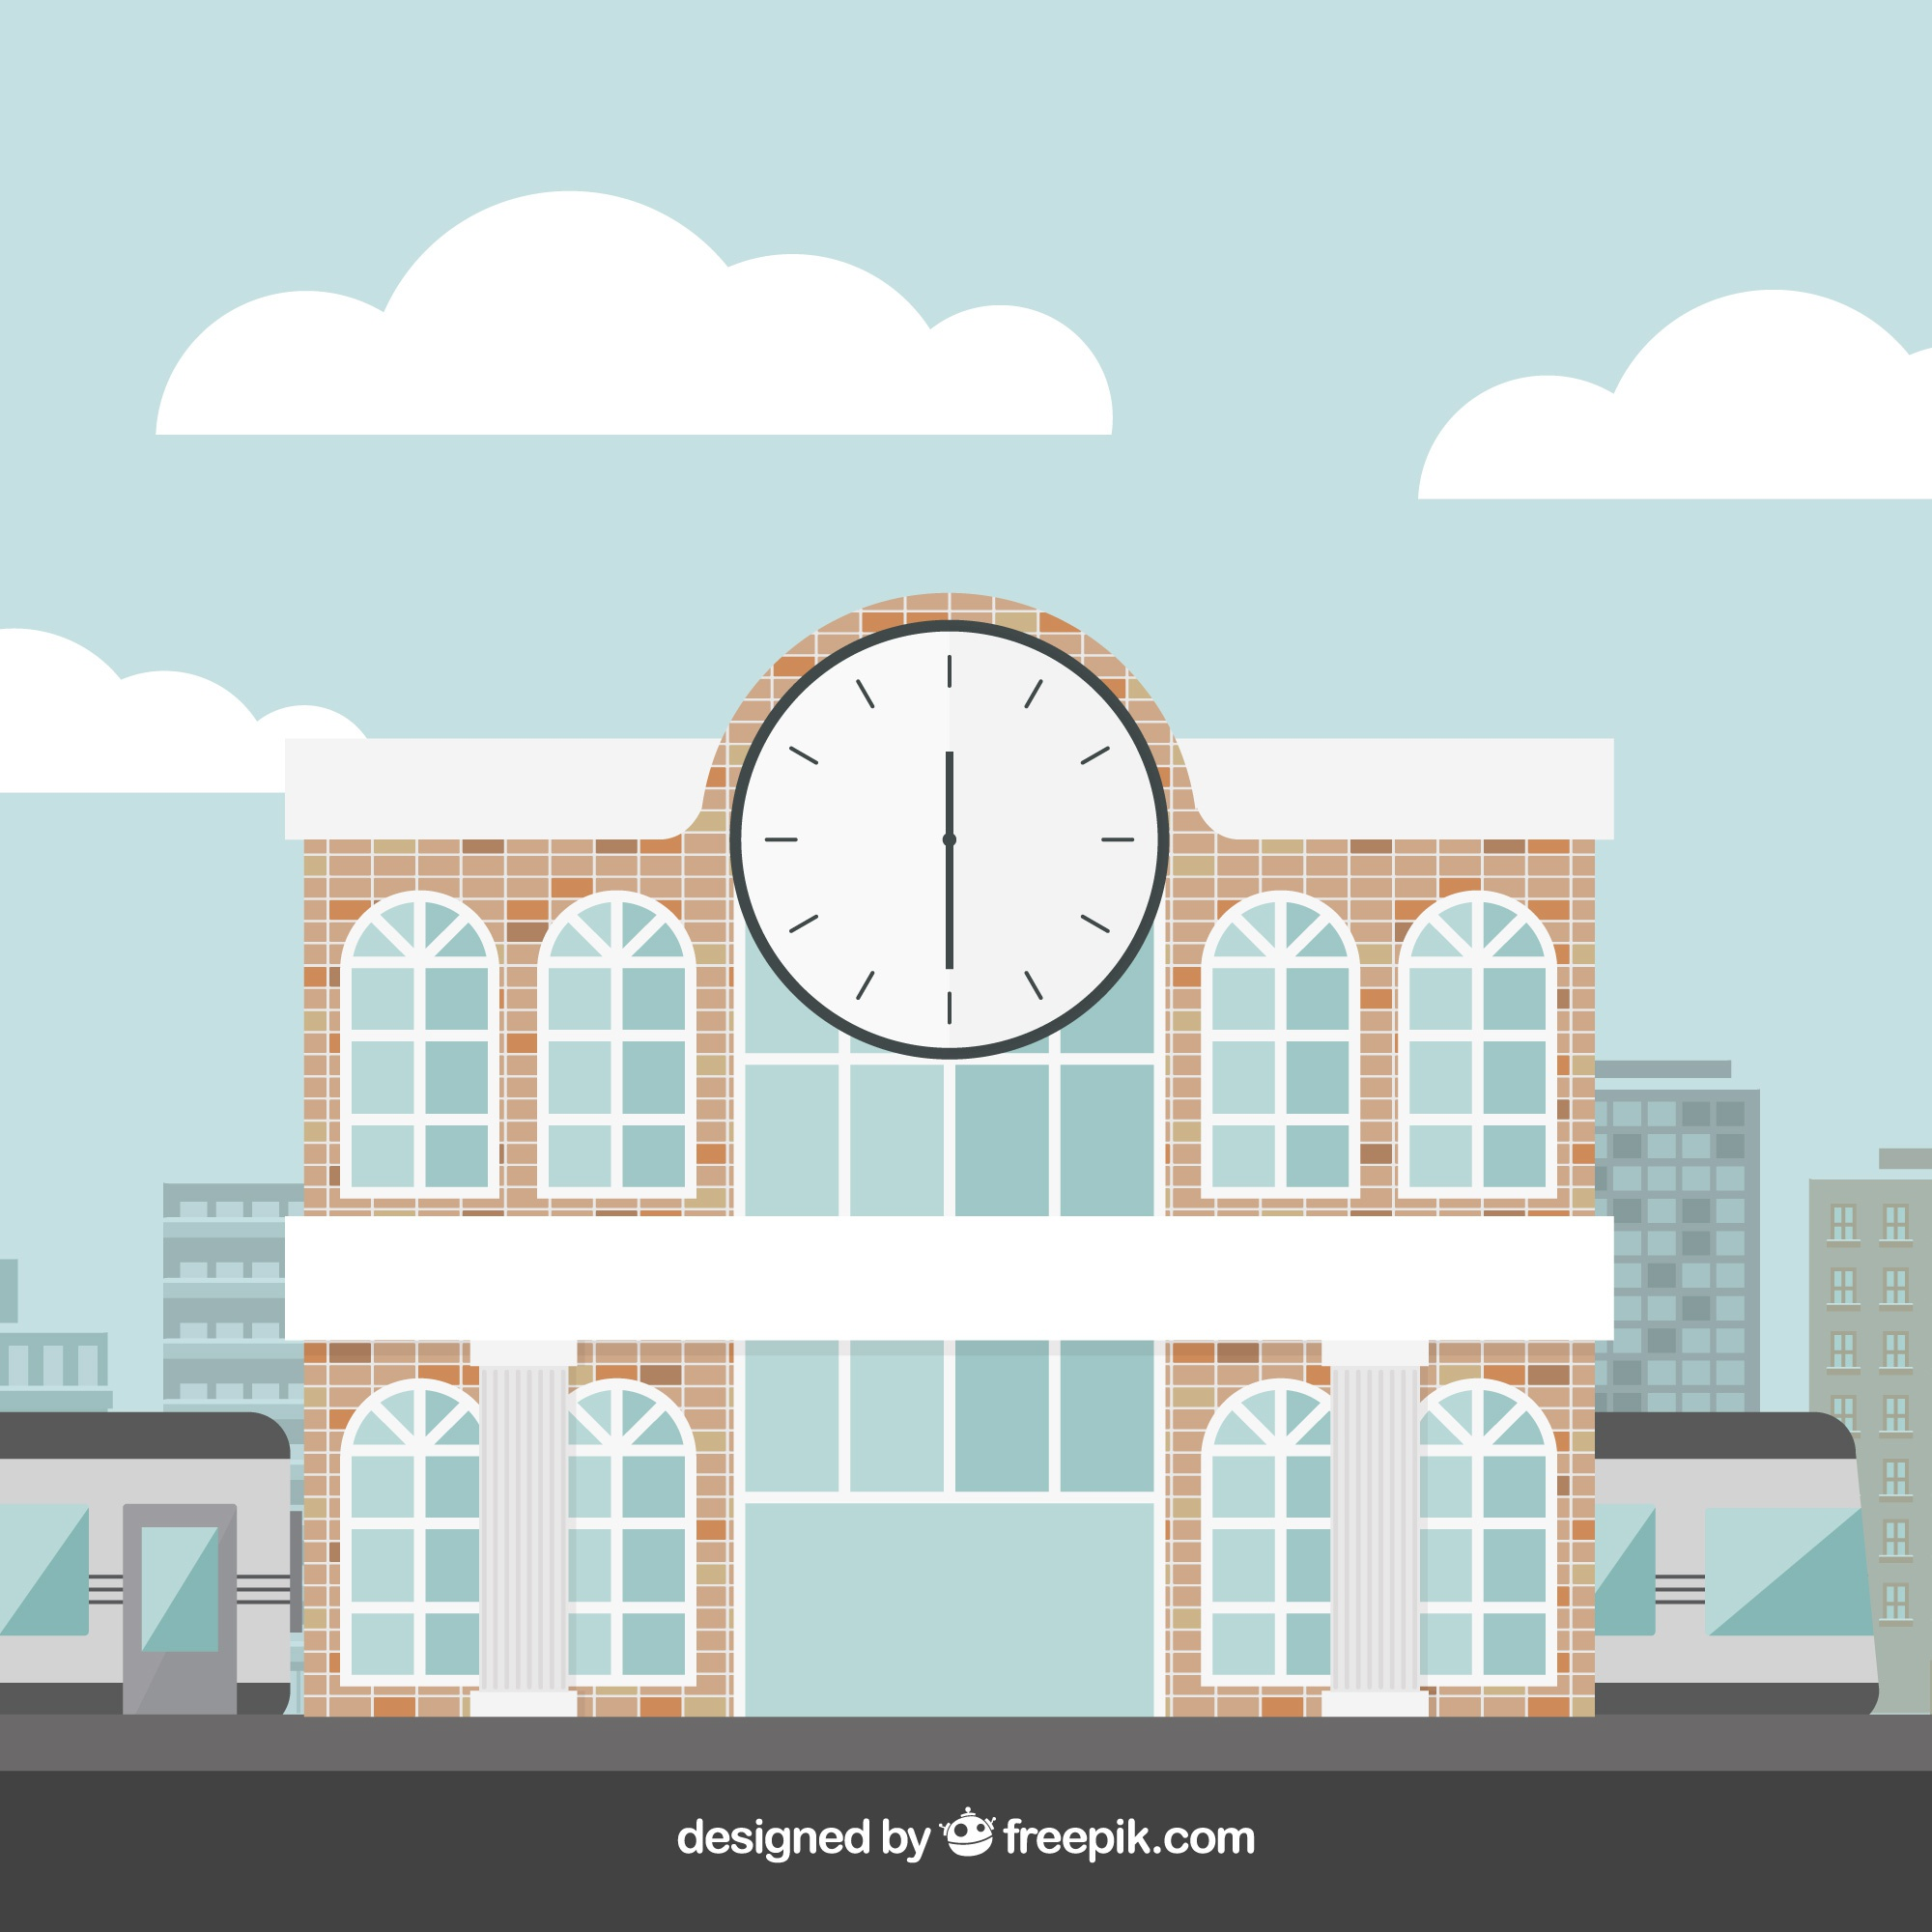 Background of modern train station with a big clock